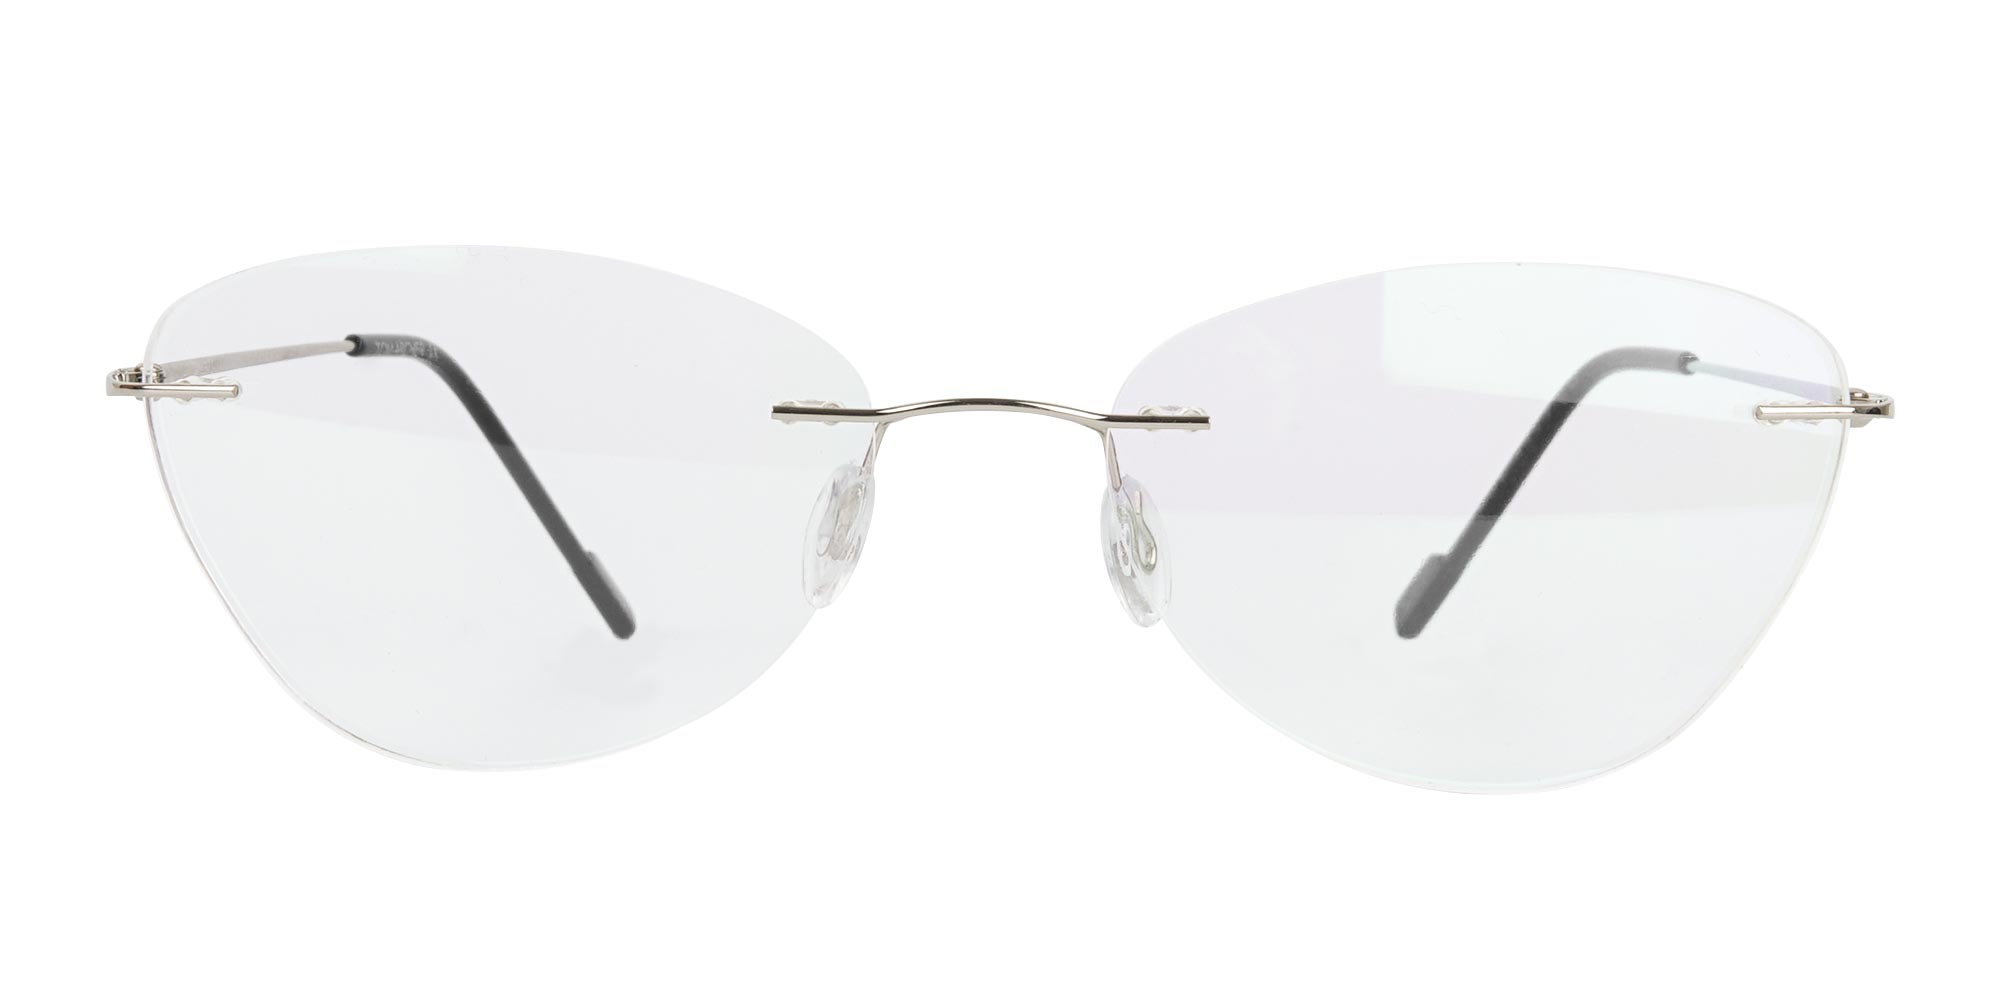 oval cat eye rimless glasses for square face shape